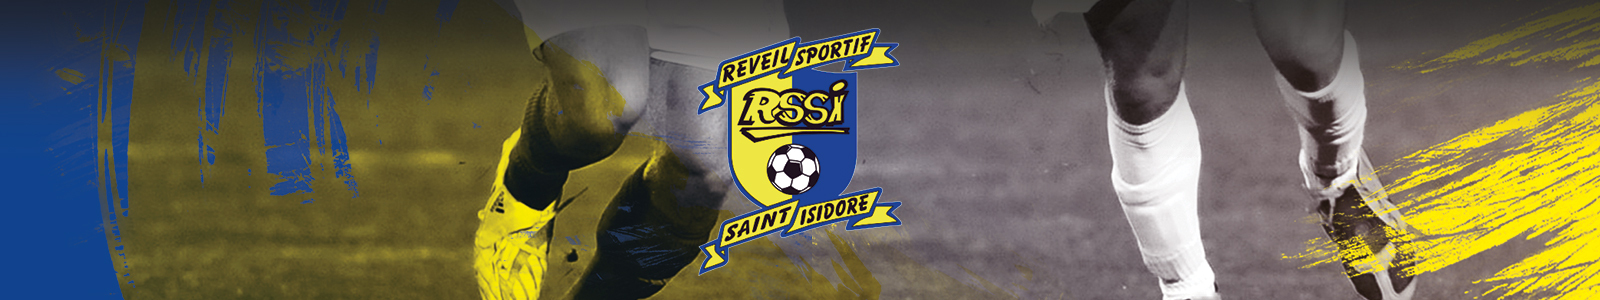 Réveil Sportif Saint-Isidore : site officiel du club de foot de ST ISIDORE - footeo